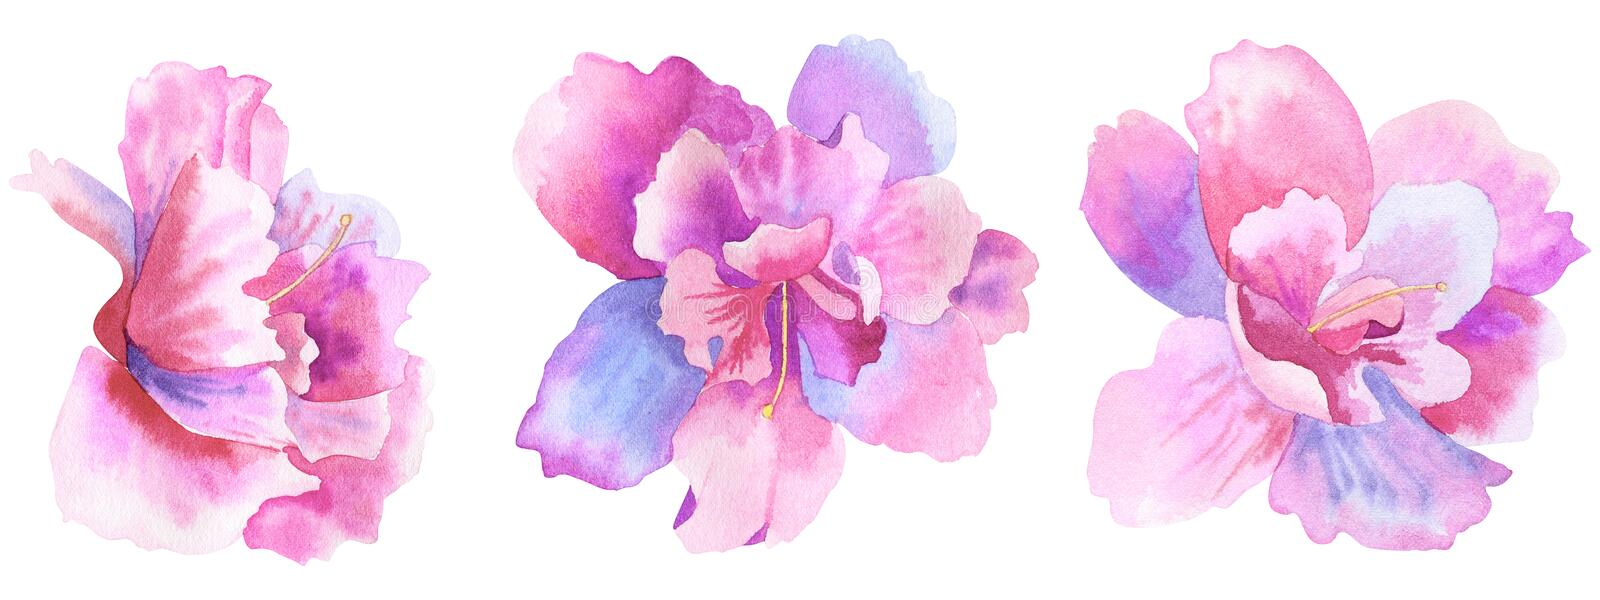 Beautiful purple pink flowers. Floral set. Hand drawn watercolor illustration. Isolated on white background stock illustration